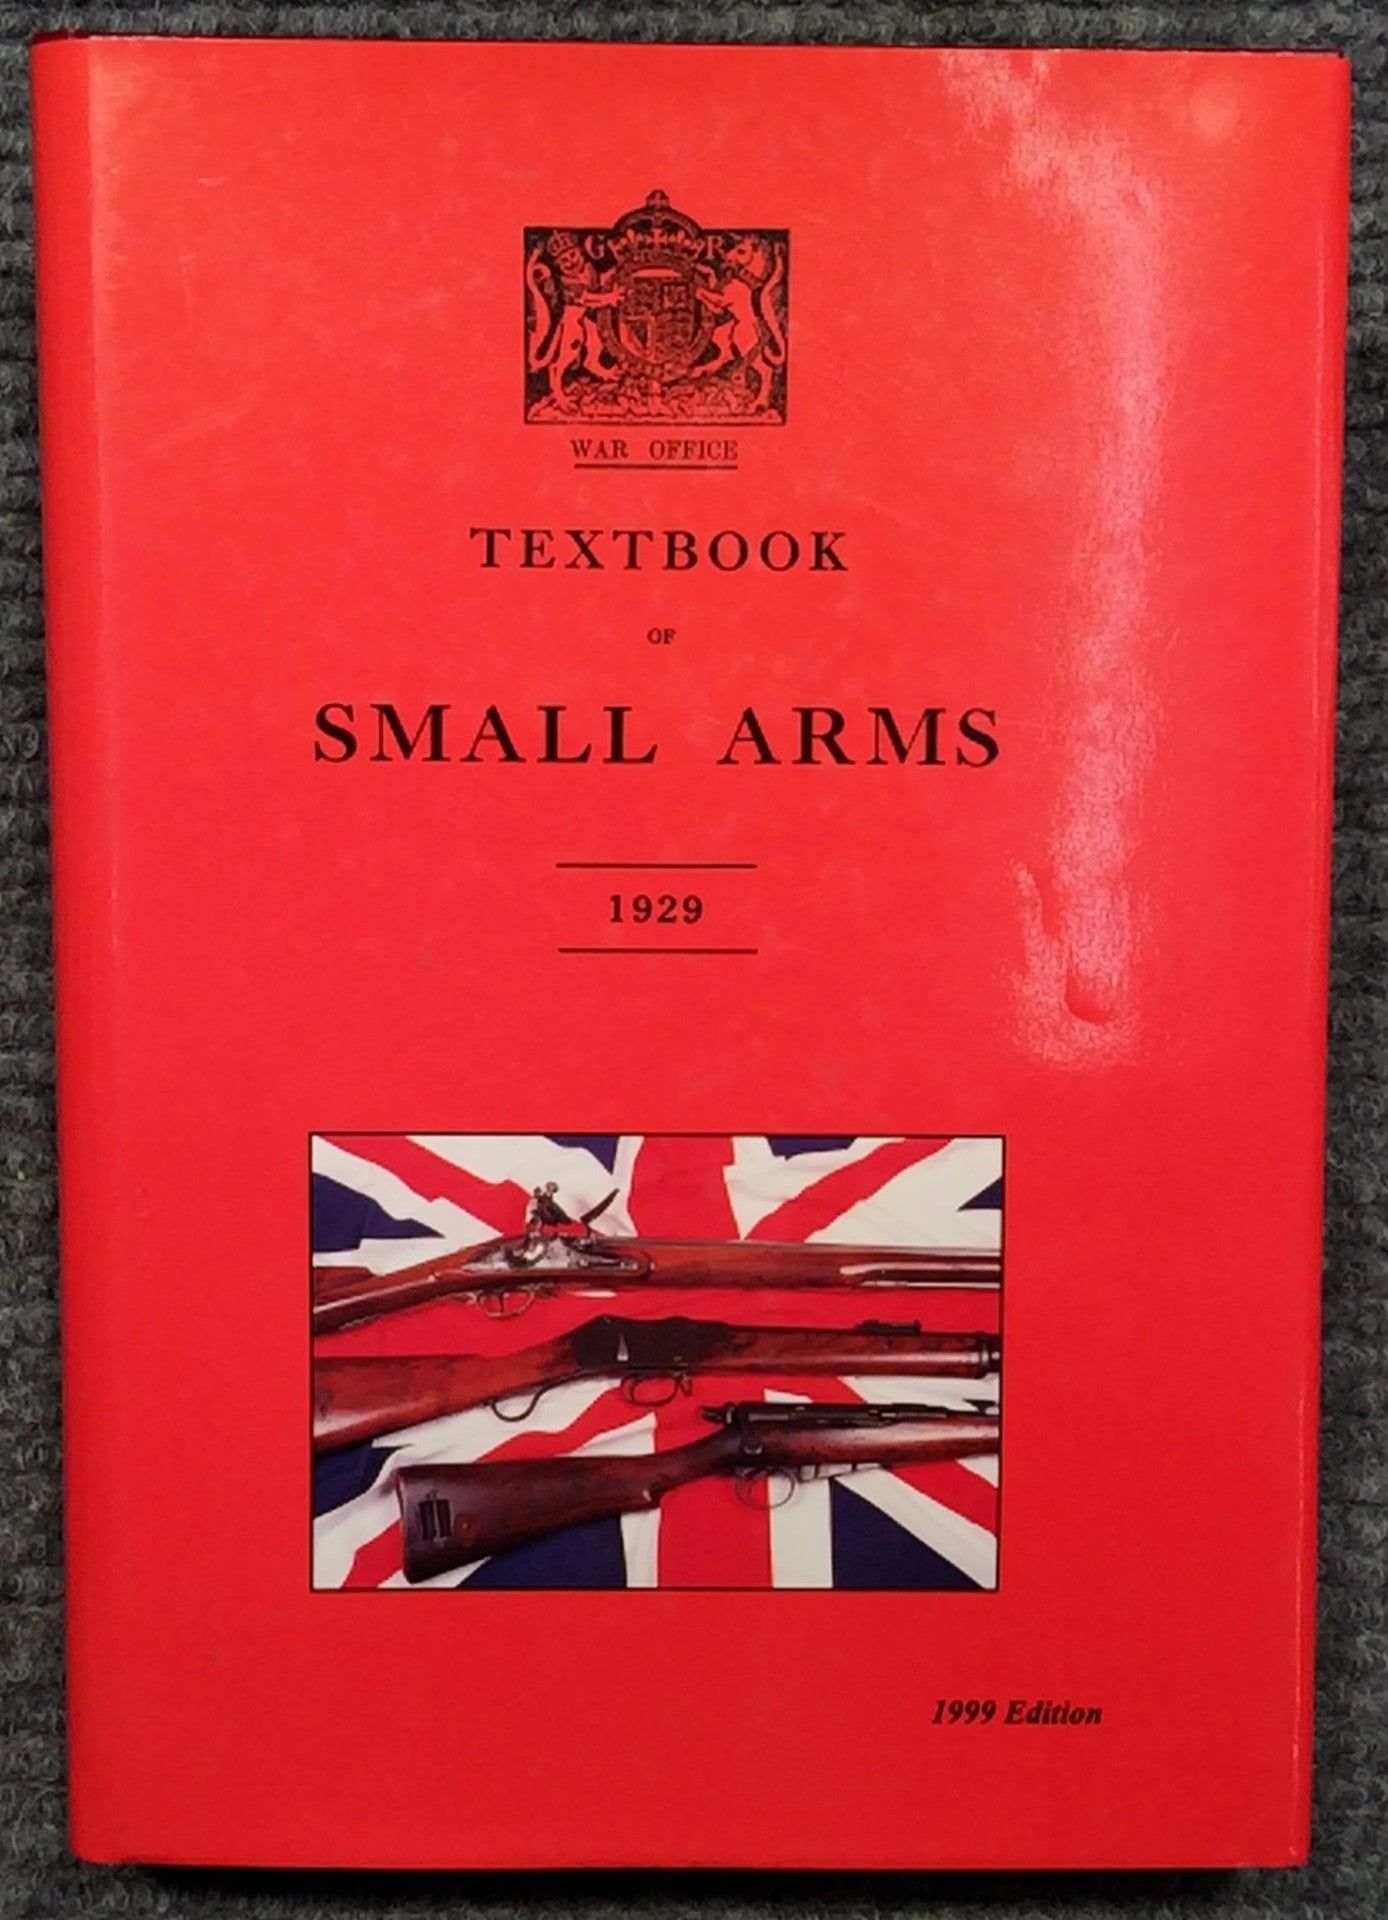 Textbook of Small Arms 1929 Reproduction